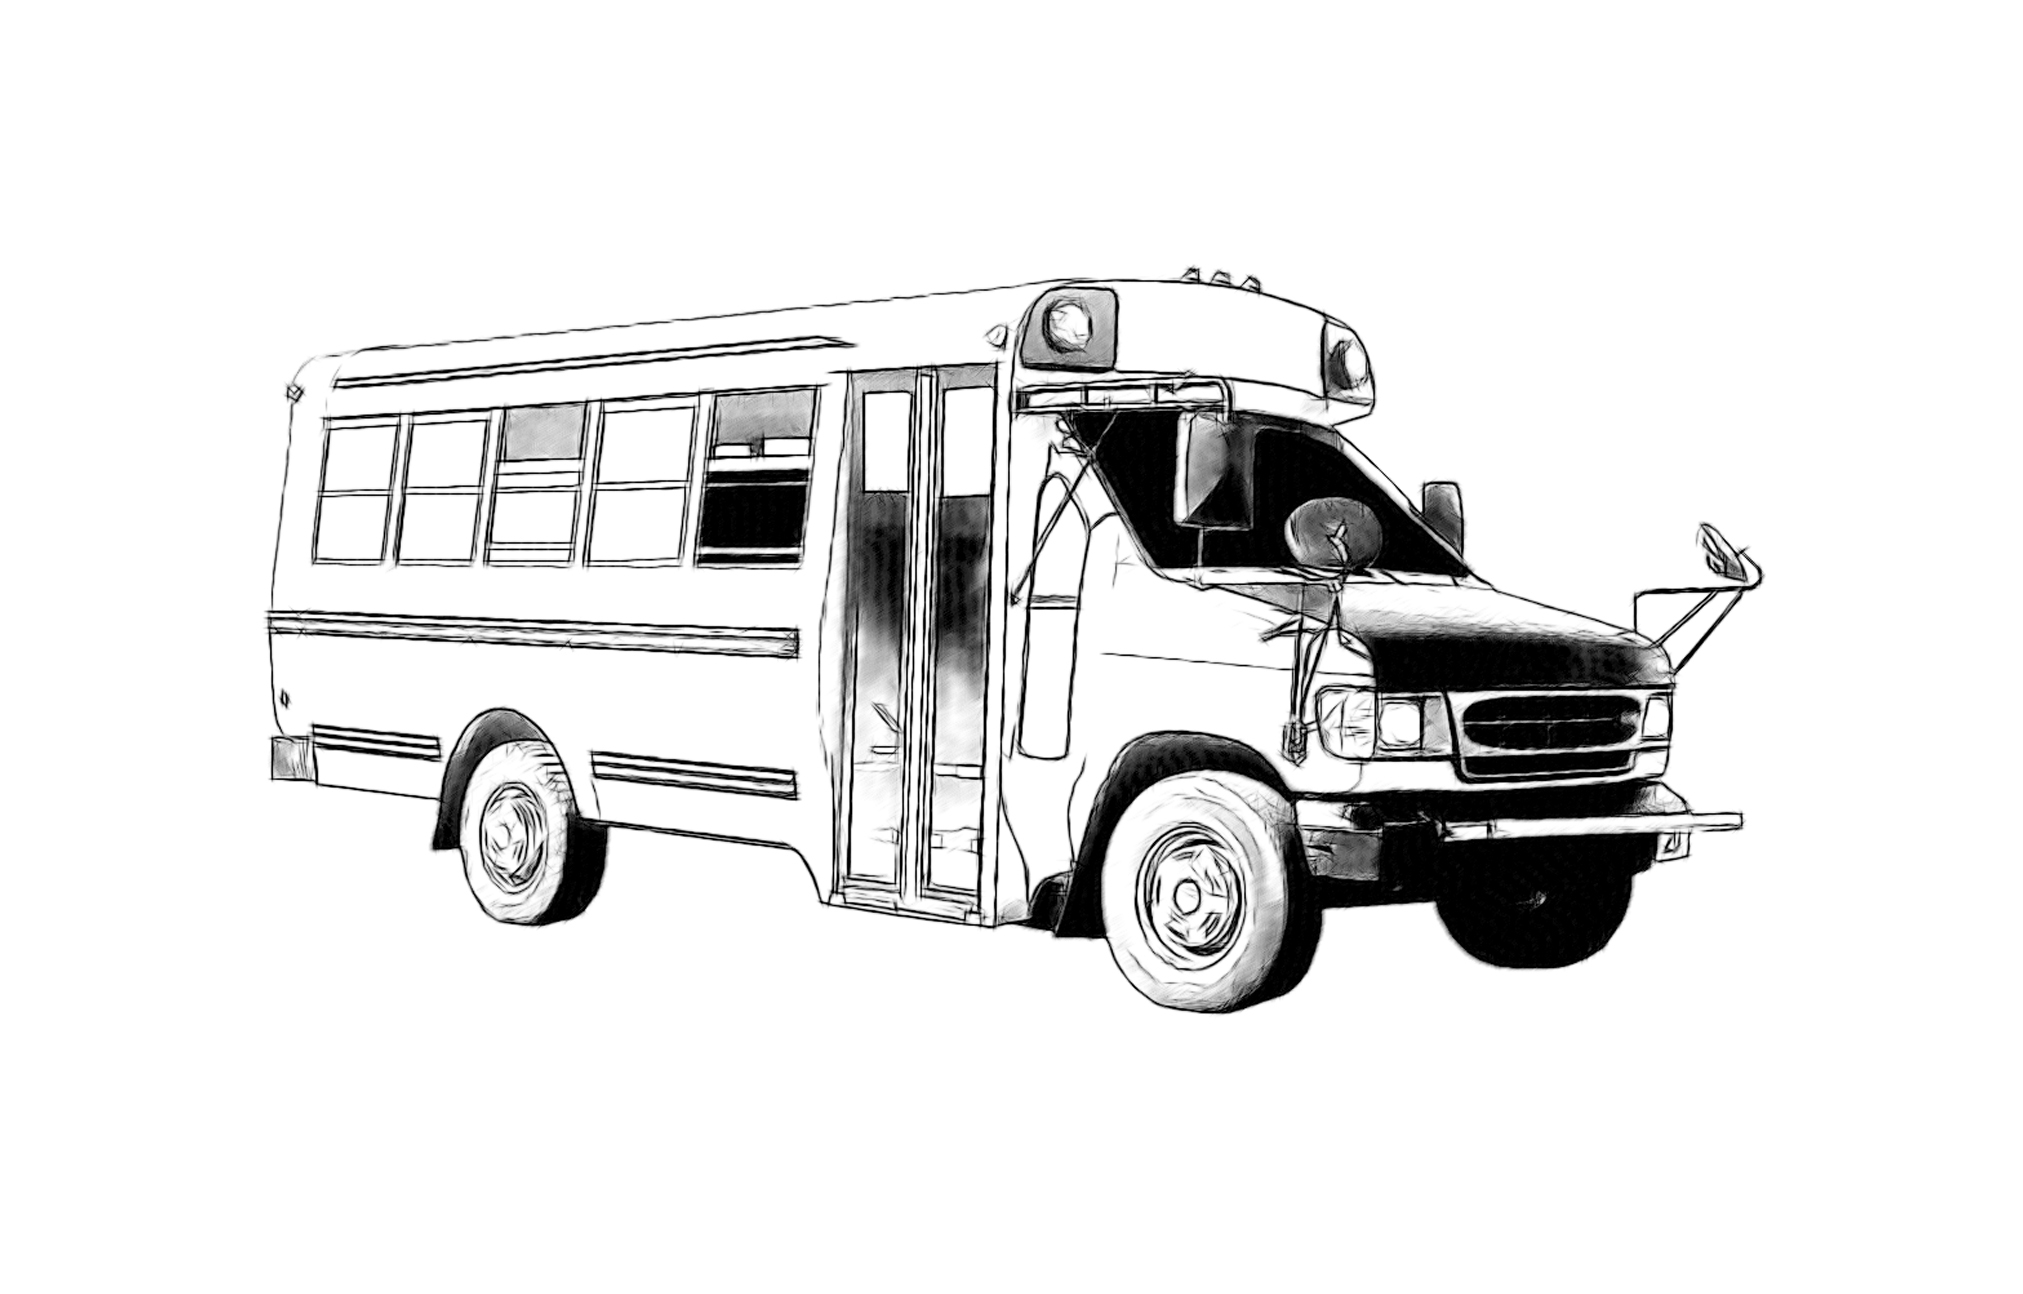 coloring sheet school bus coloring page school bus coloring pages to download and print for free page bus coloring sheet coloring school